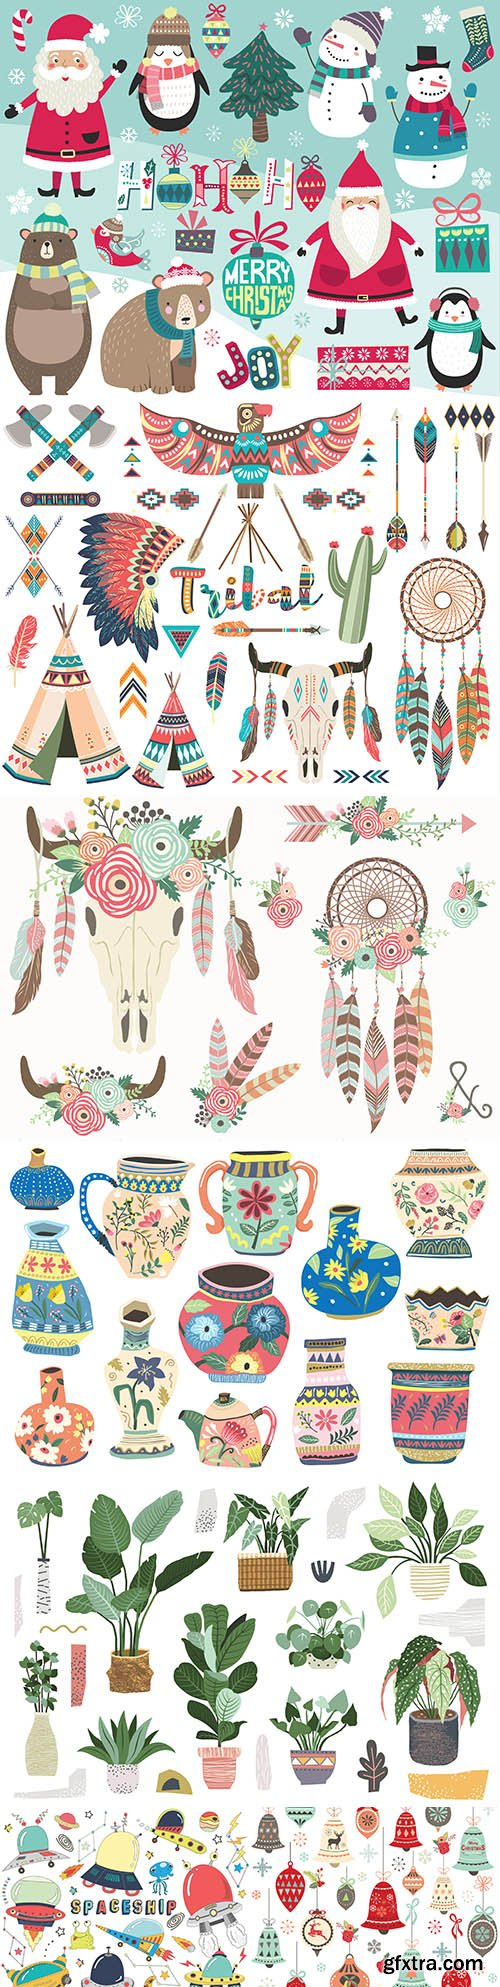 Decorative collection of hand-drawn illustrations on different topics